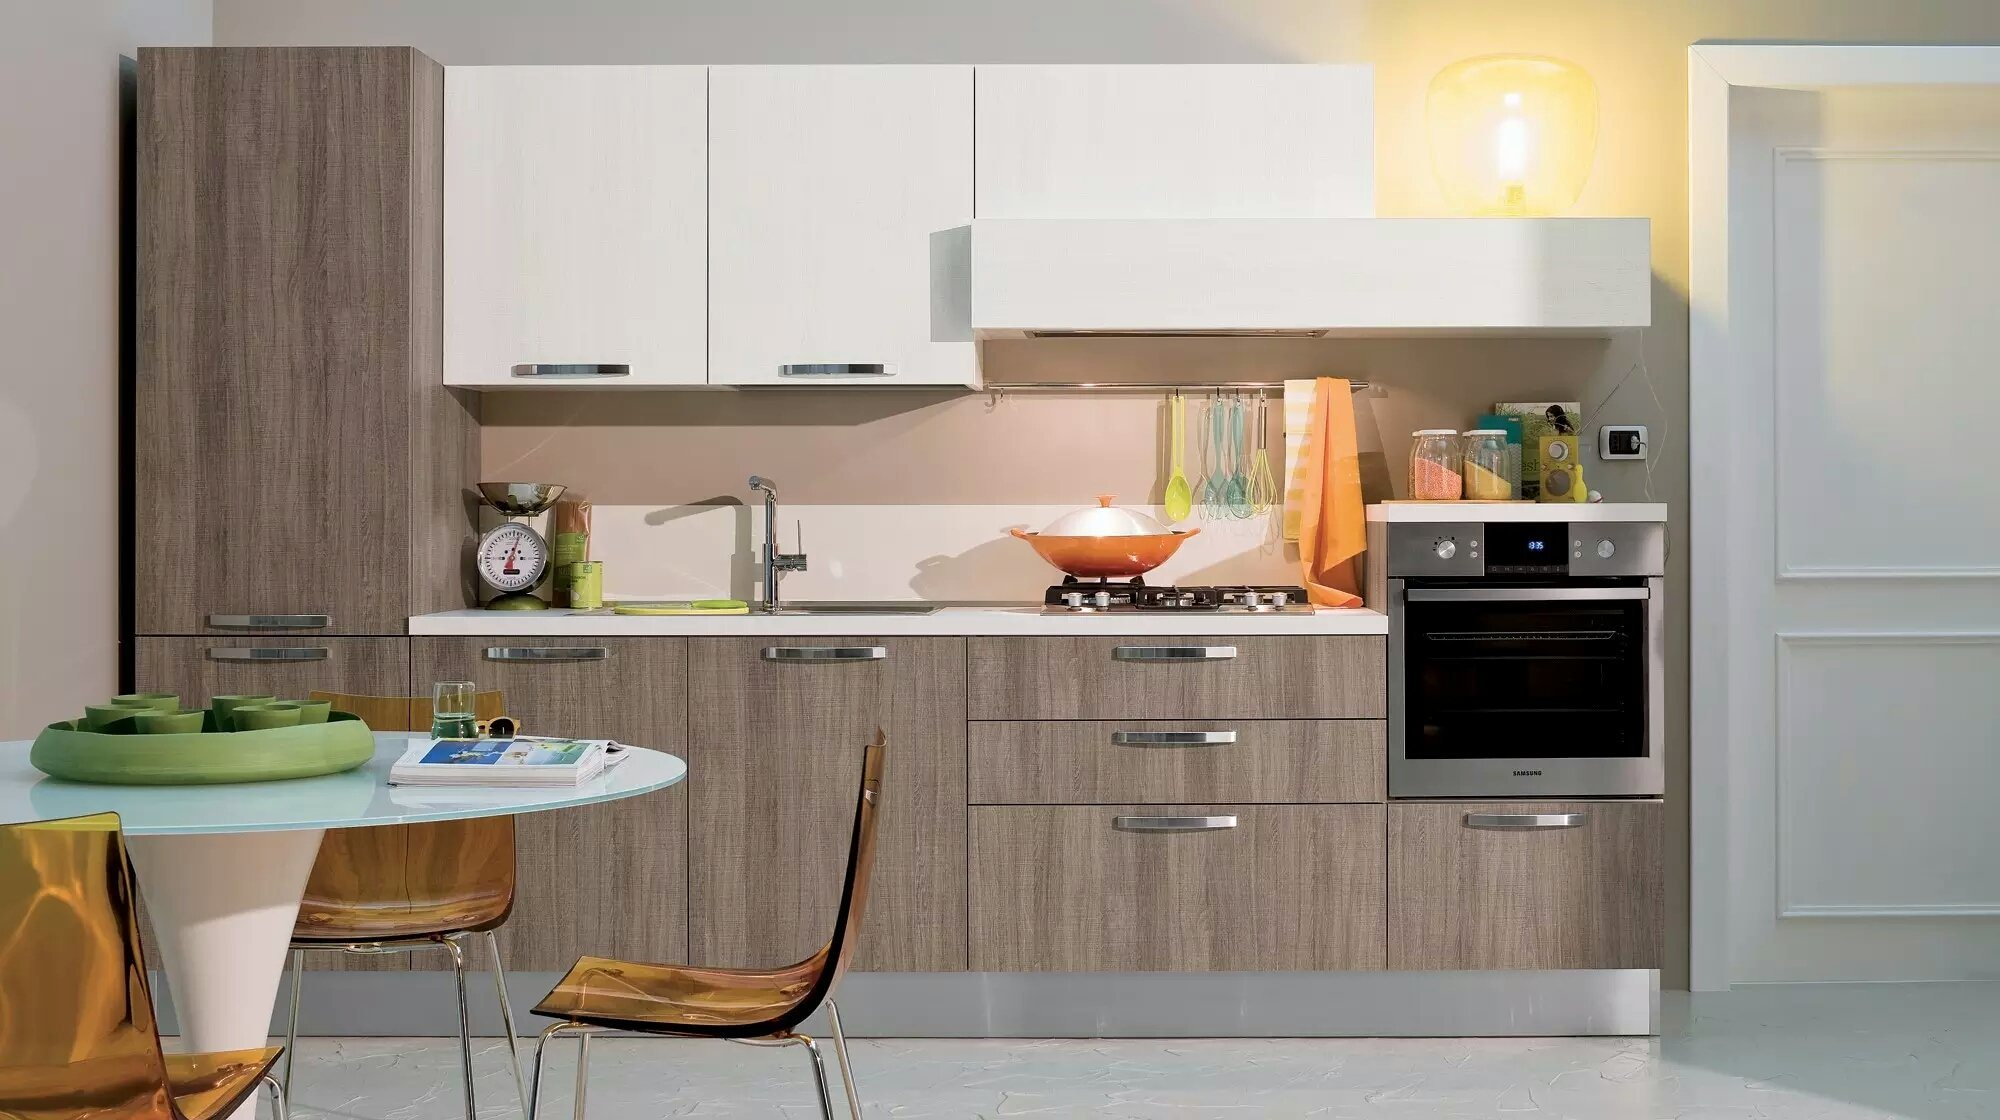 [Hot Item] MFC Simple Kitchen Cabinets for Apartment Project